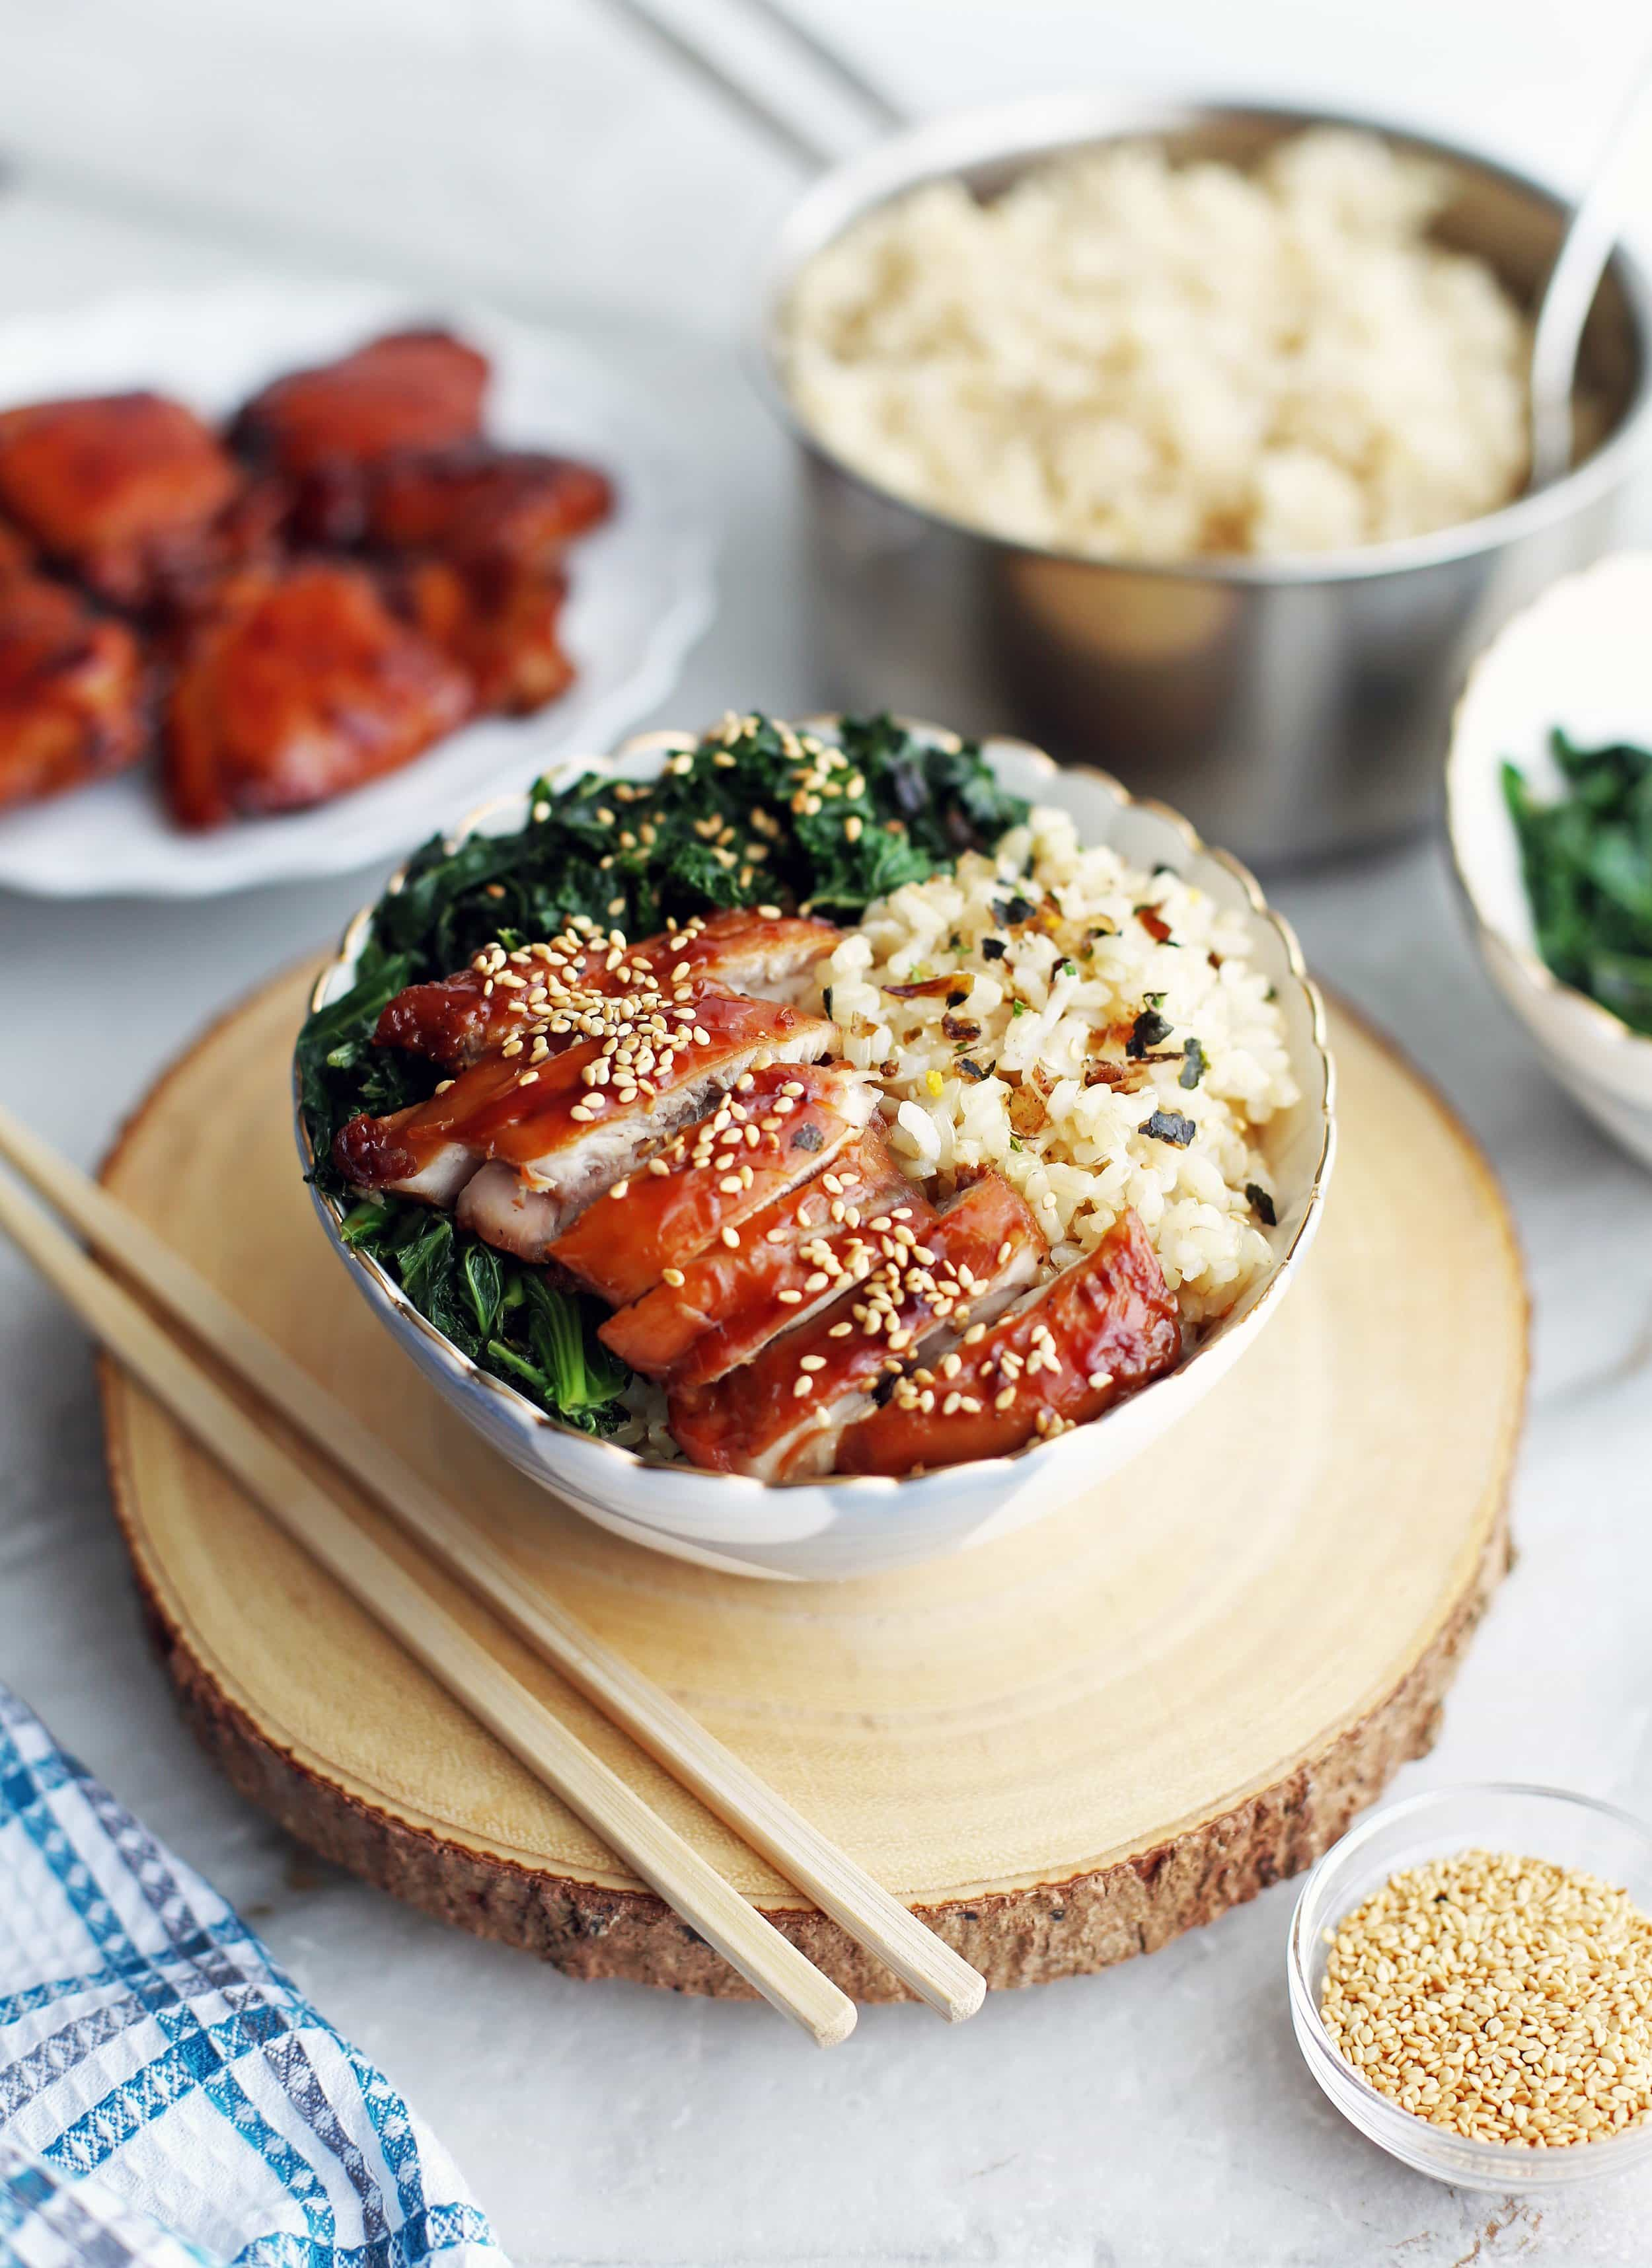 Side view of a bowl of teriyaki chicken with green sauteed kale, and brown rice.